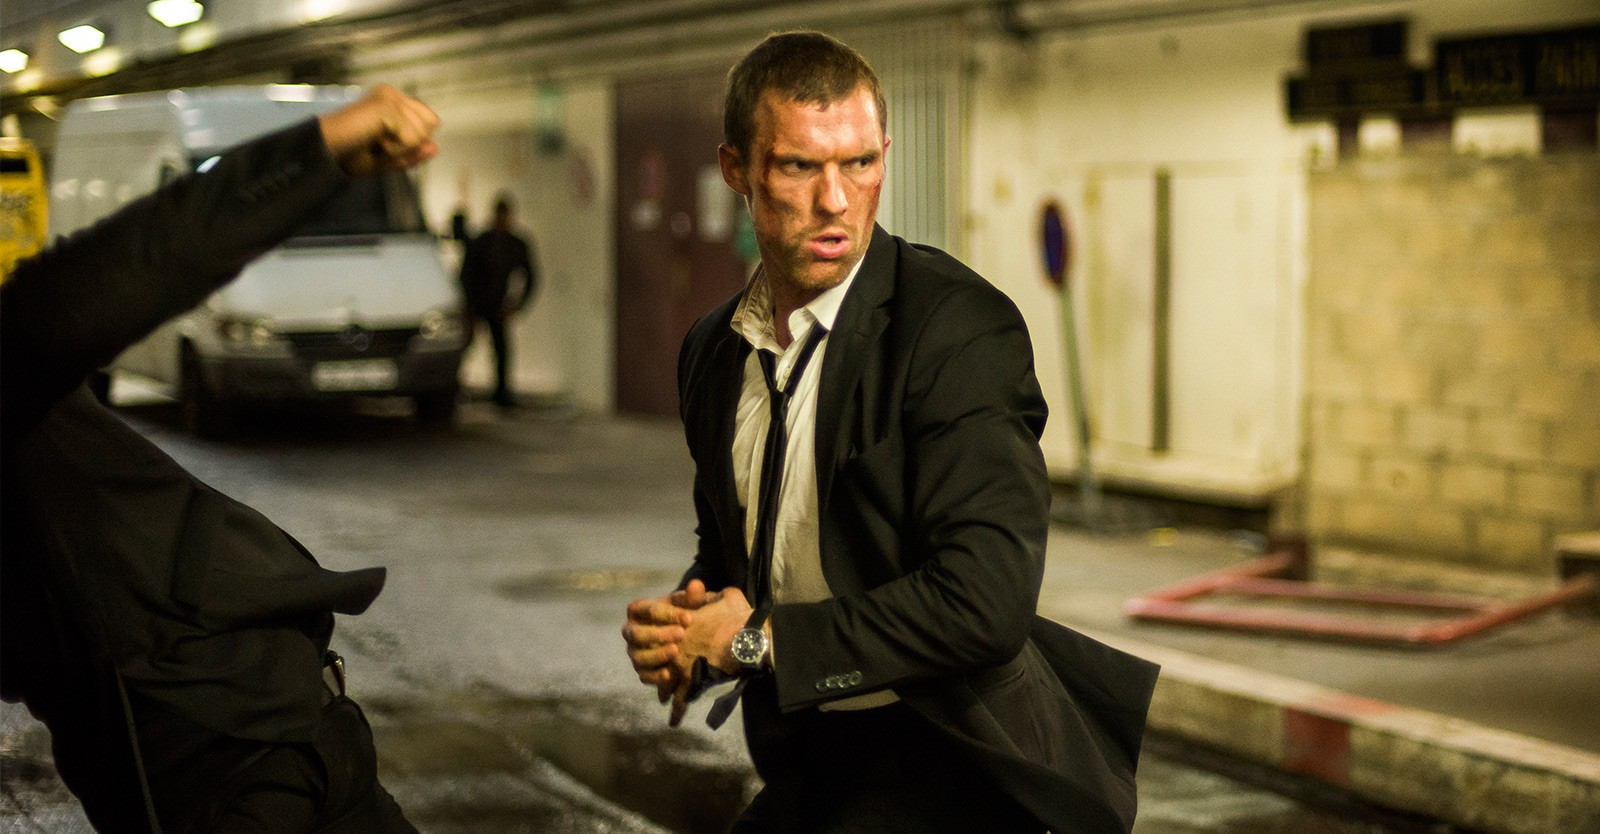 Frank Martin sports a new make and model in Transporter Refueled. Image used from Forbes.com